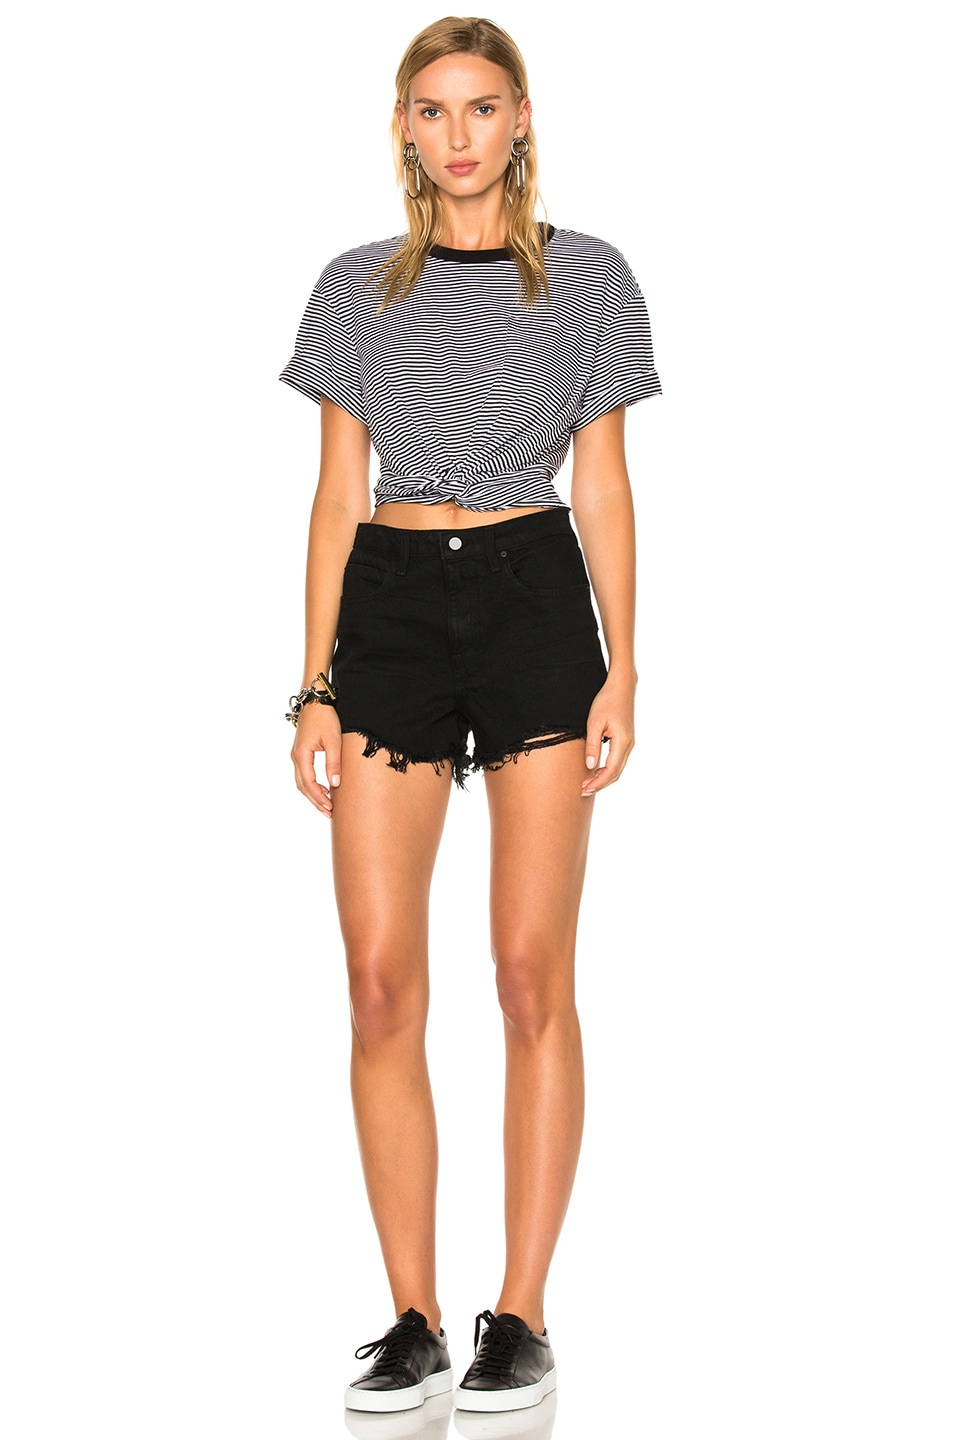 Image 5 of T by Alexander Wang Cotton Jersey Twist Front Short Sleeve Tee in Black & White